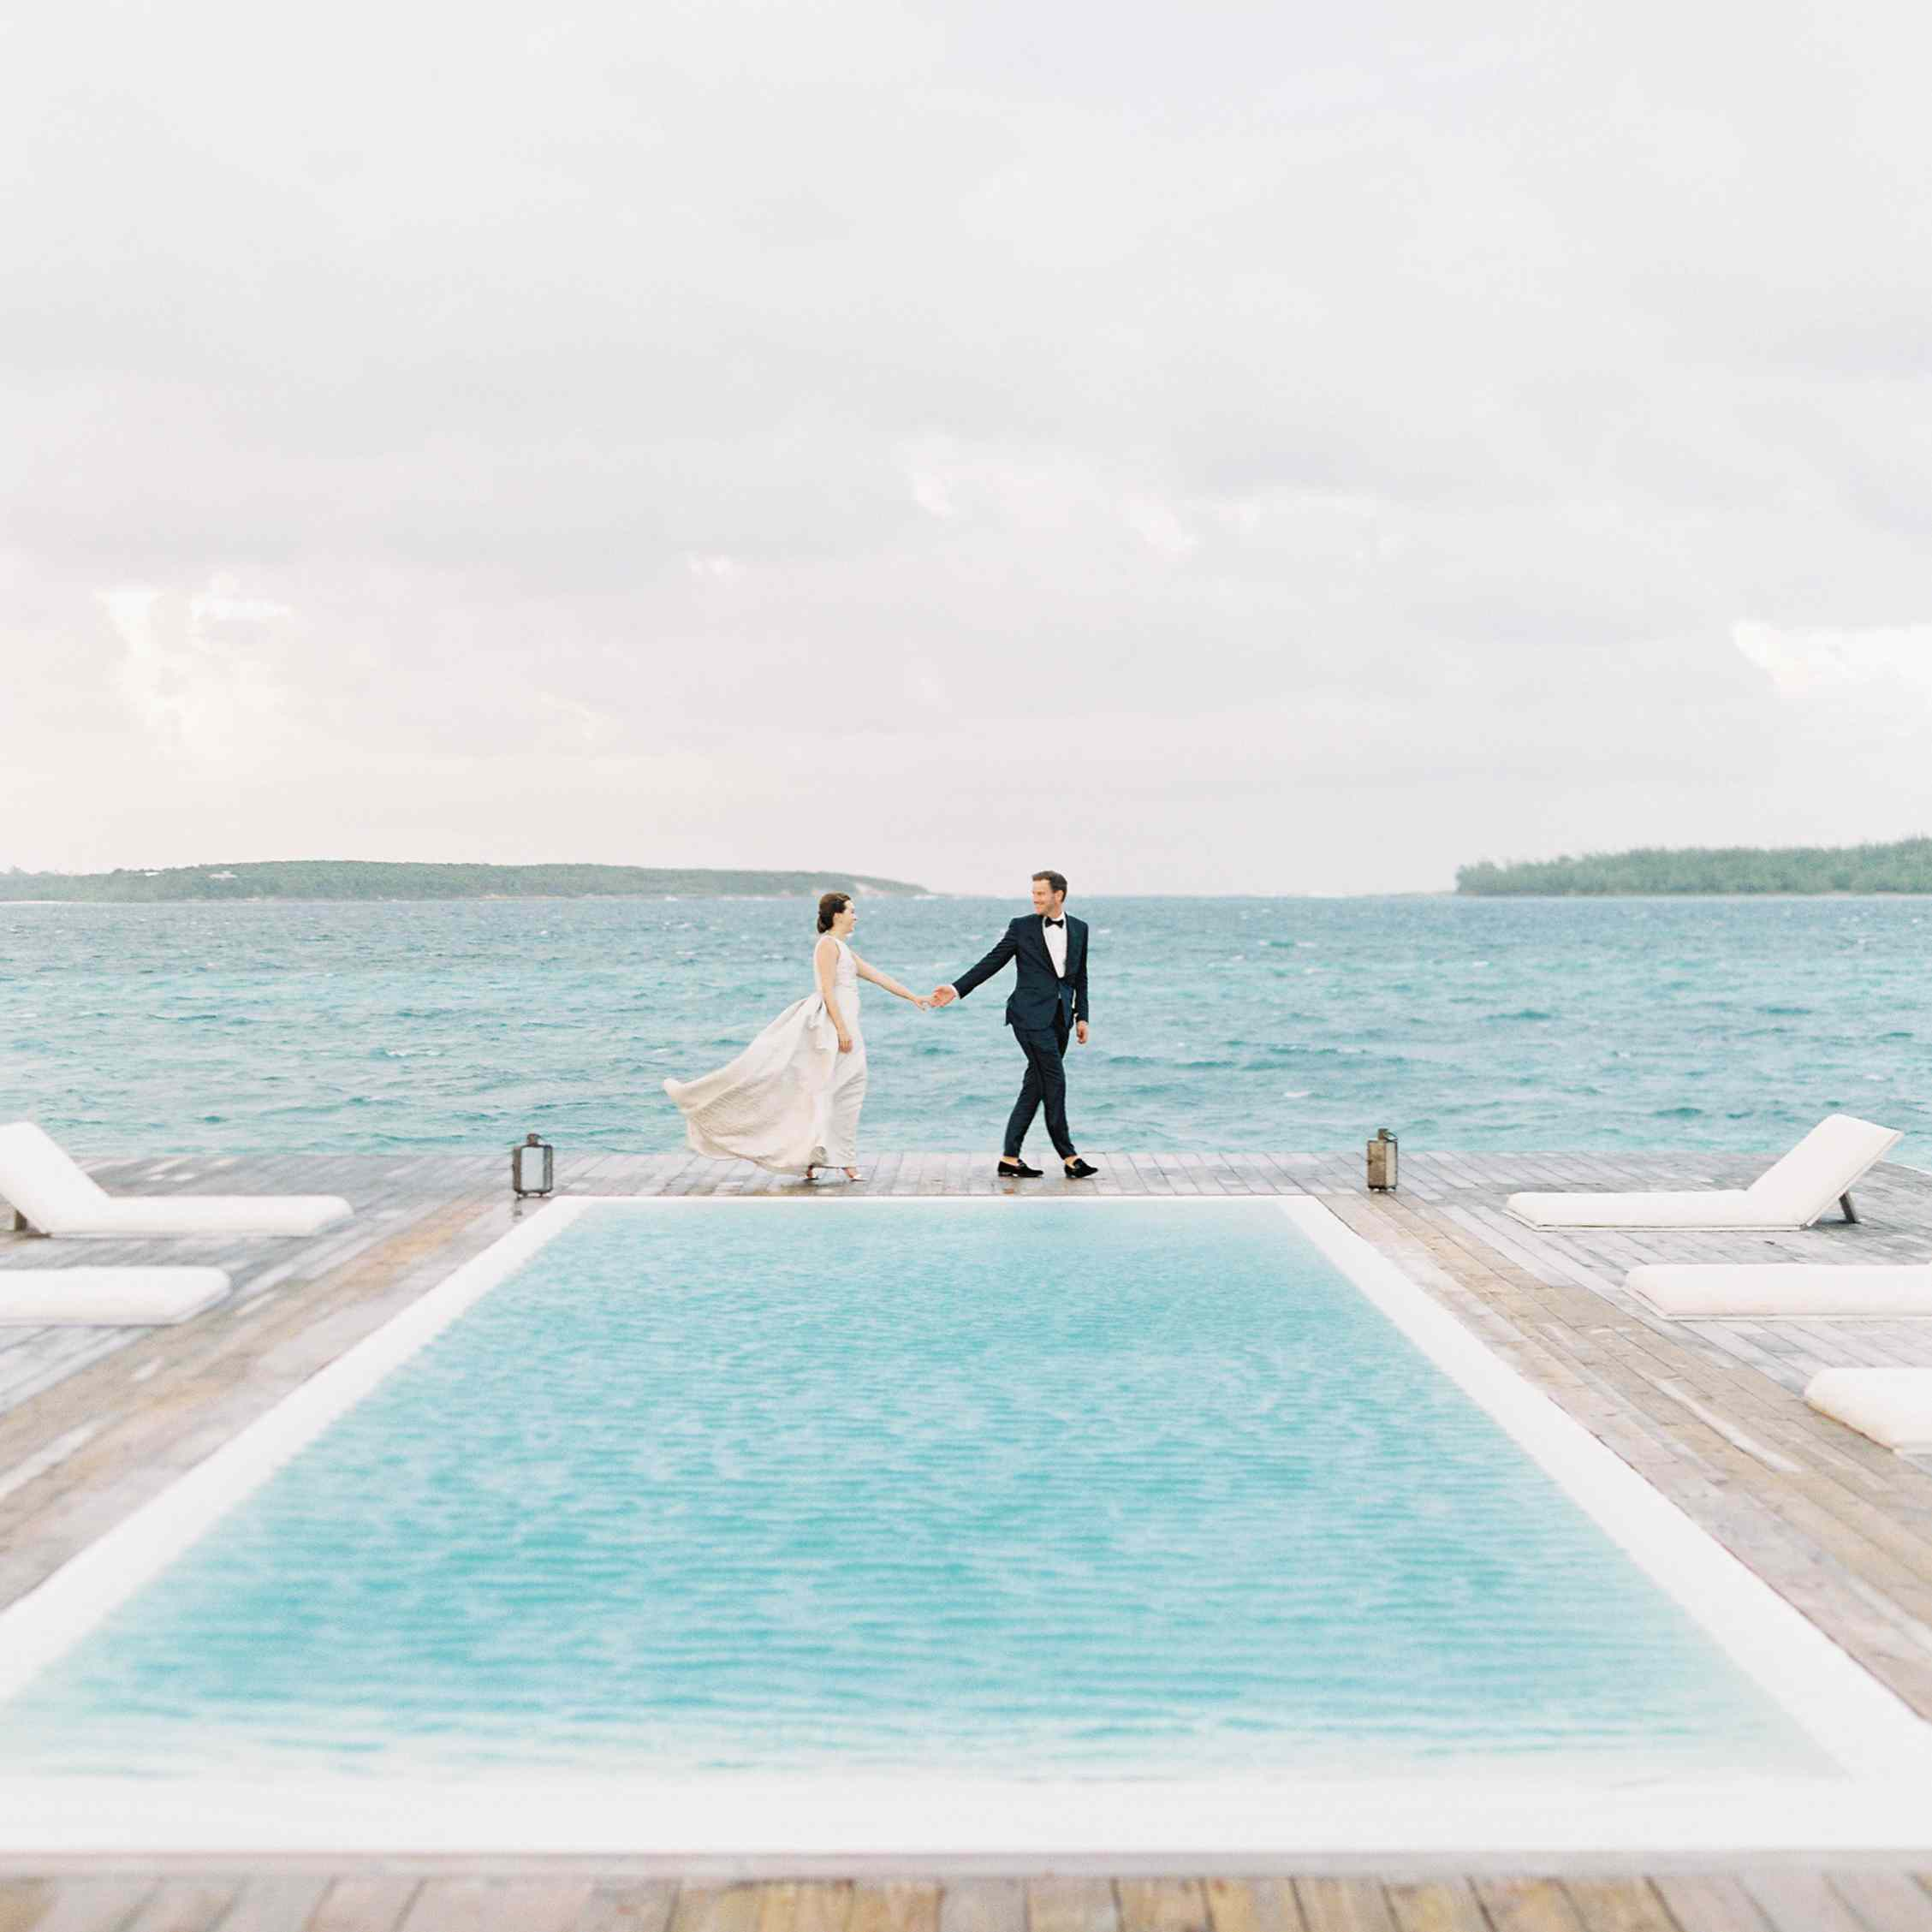 <p>bride and groom poolside</p><br><br>